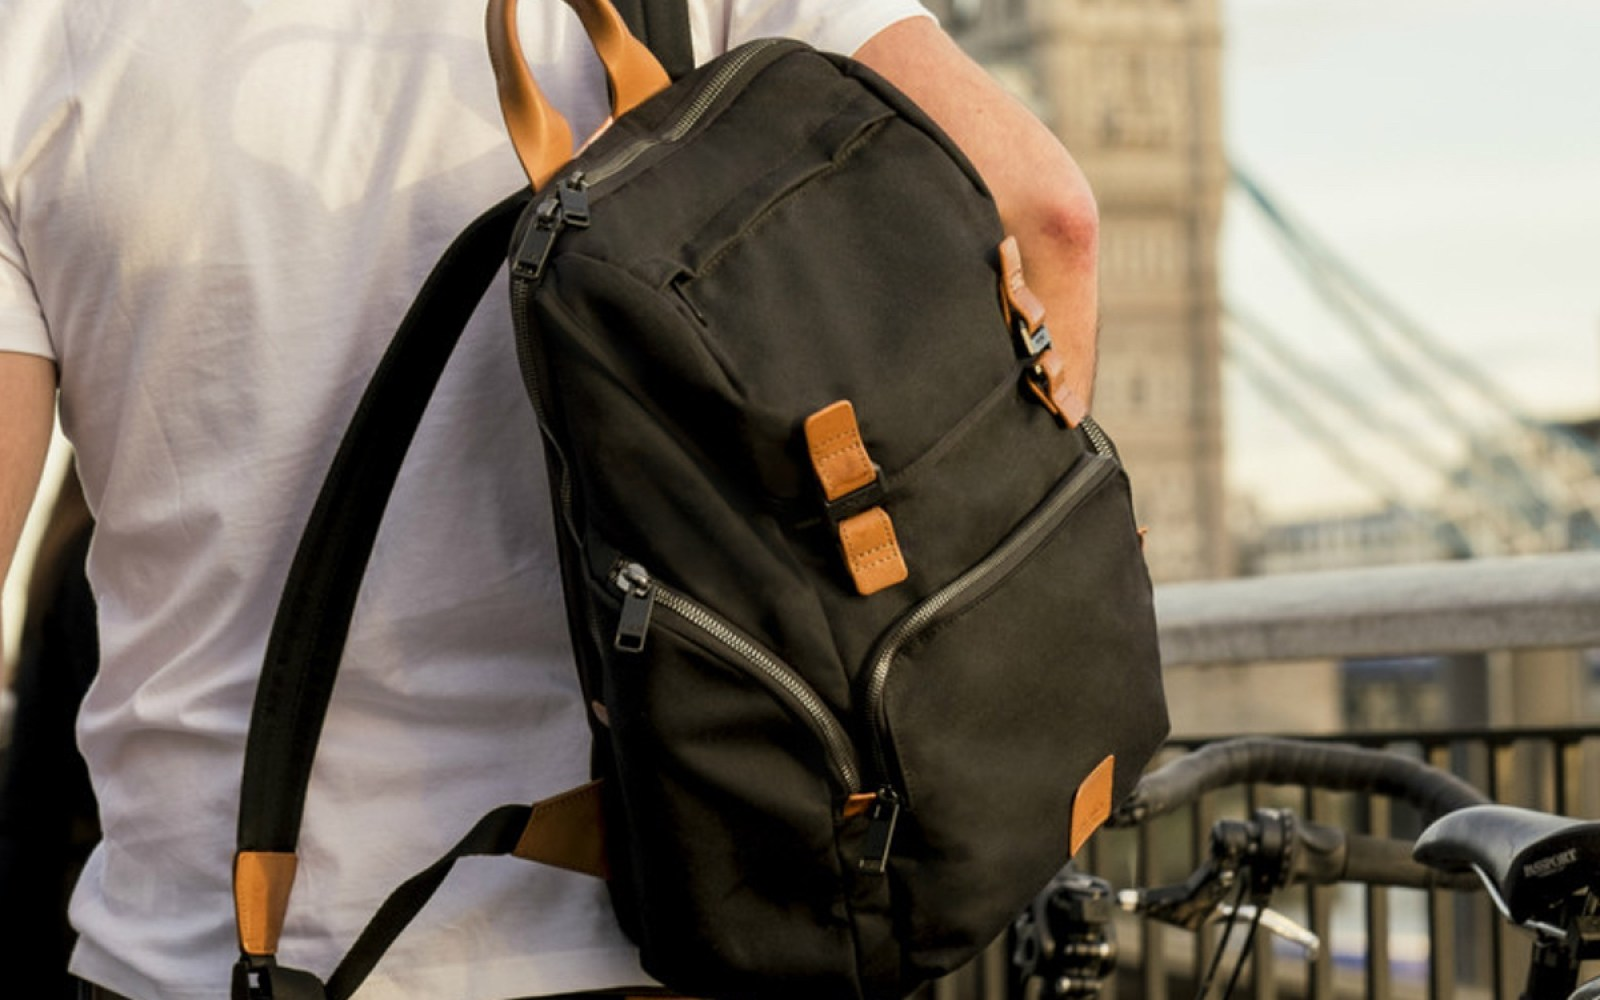 Knomo's water-resistant LiveFree bag offers wireless charging on the go